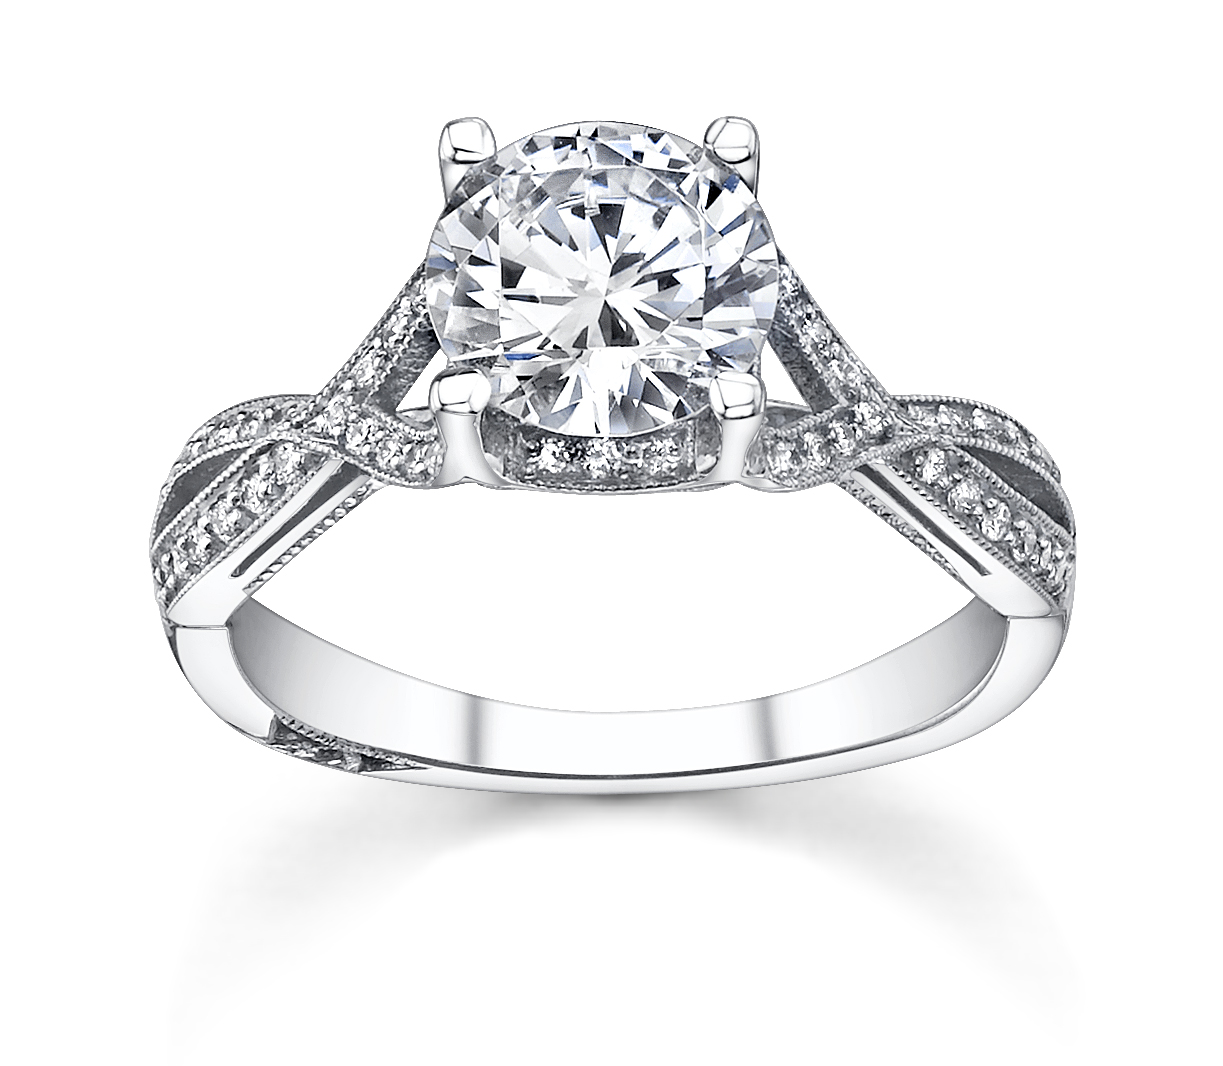 engagement setmain band platinum rings ring style with french pav in trap ct pave p diamond